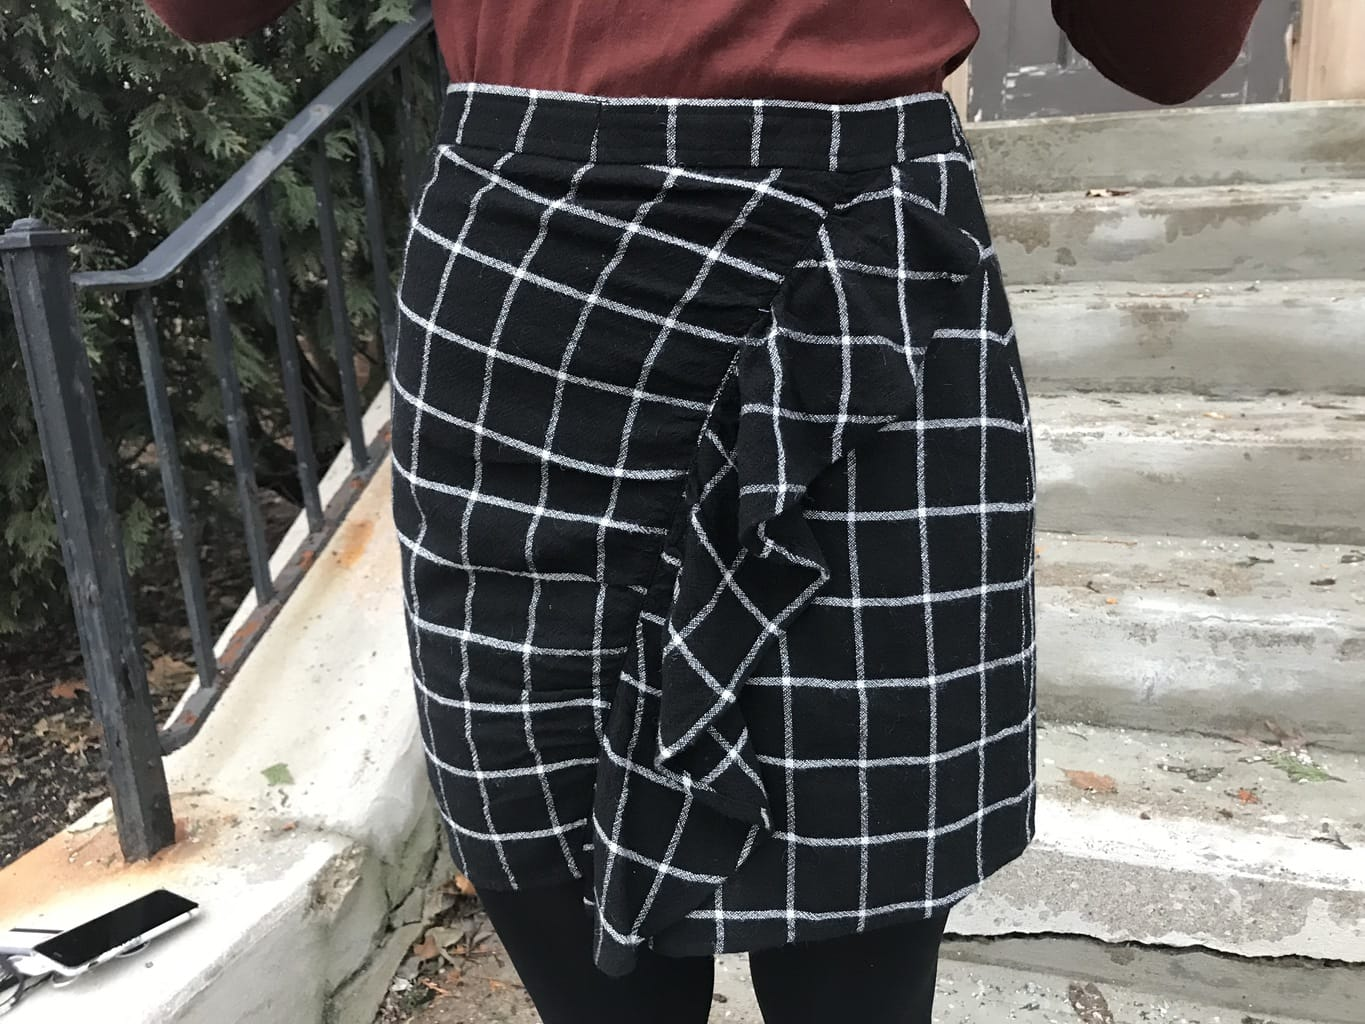 Jillian wears a black fitted skirt with a white windowpane pattern and a front ruffle.